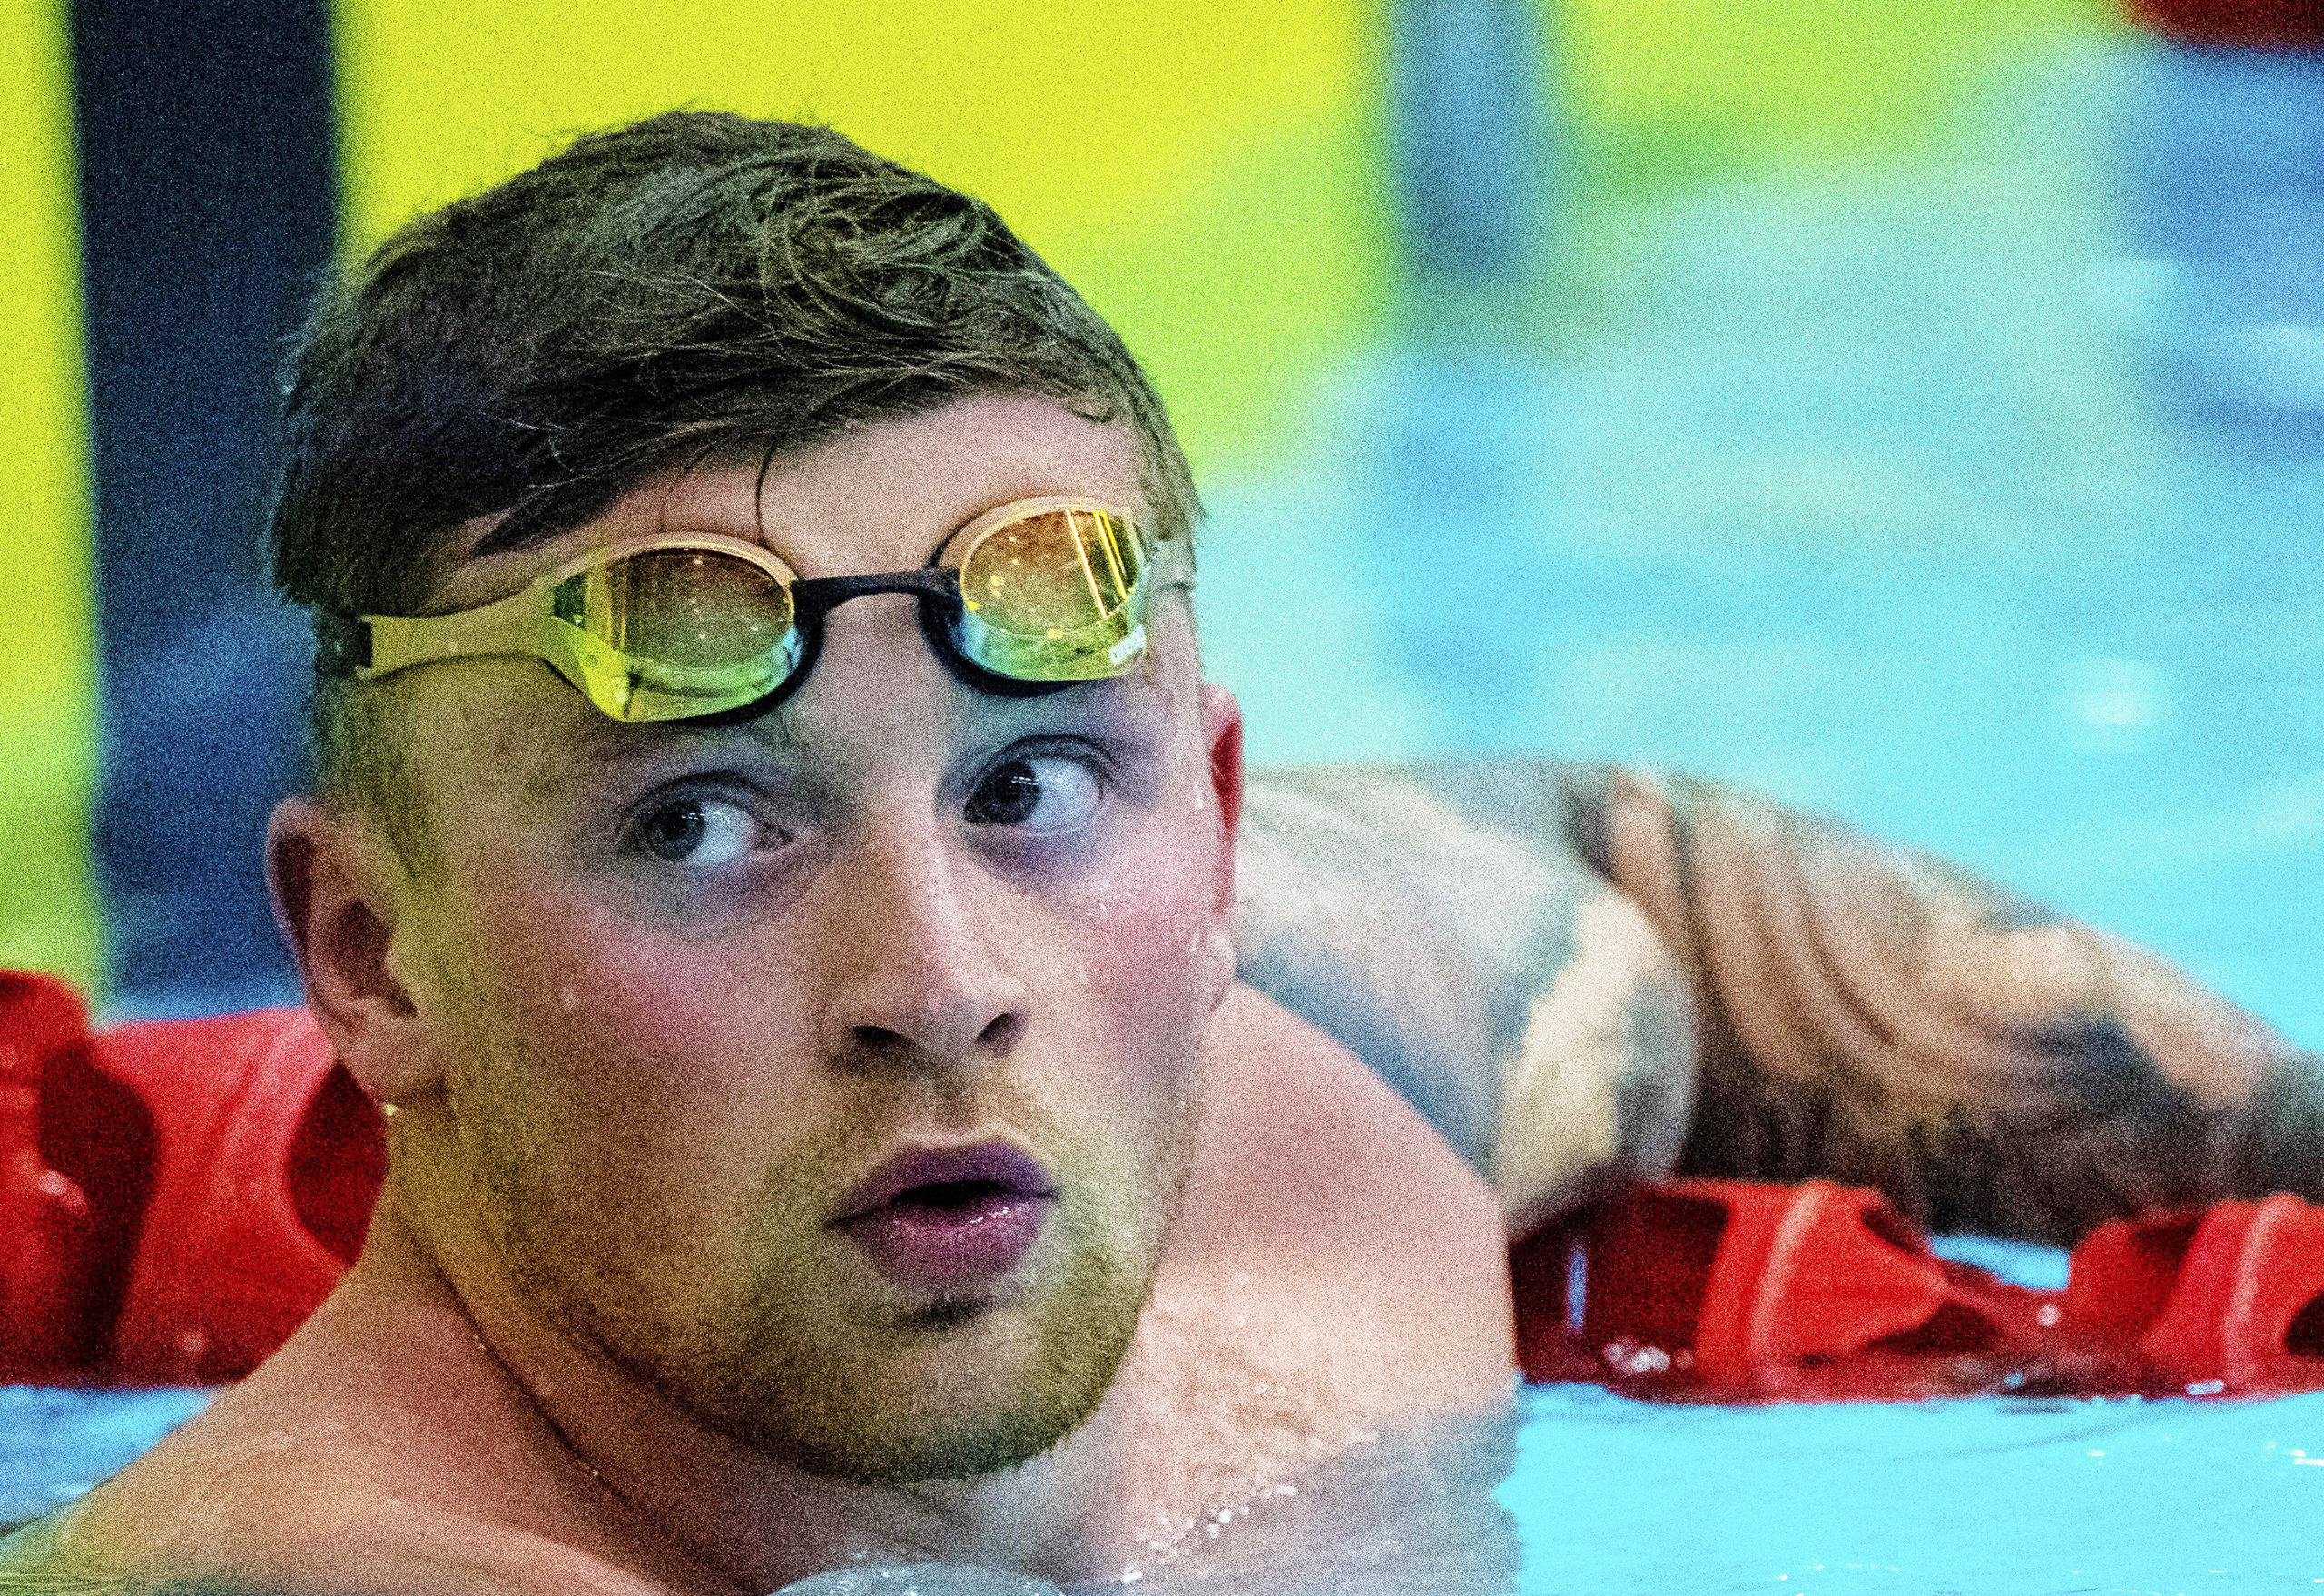 Adam Peaty had a swimming pool put in his garden